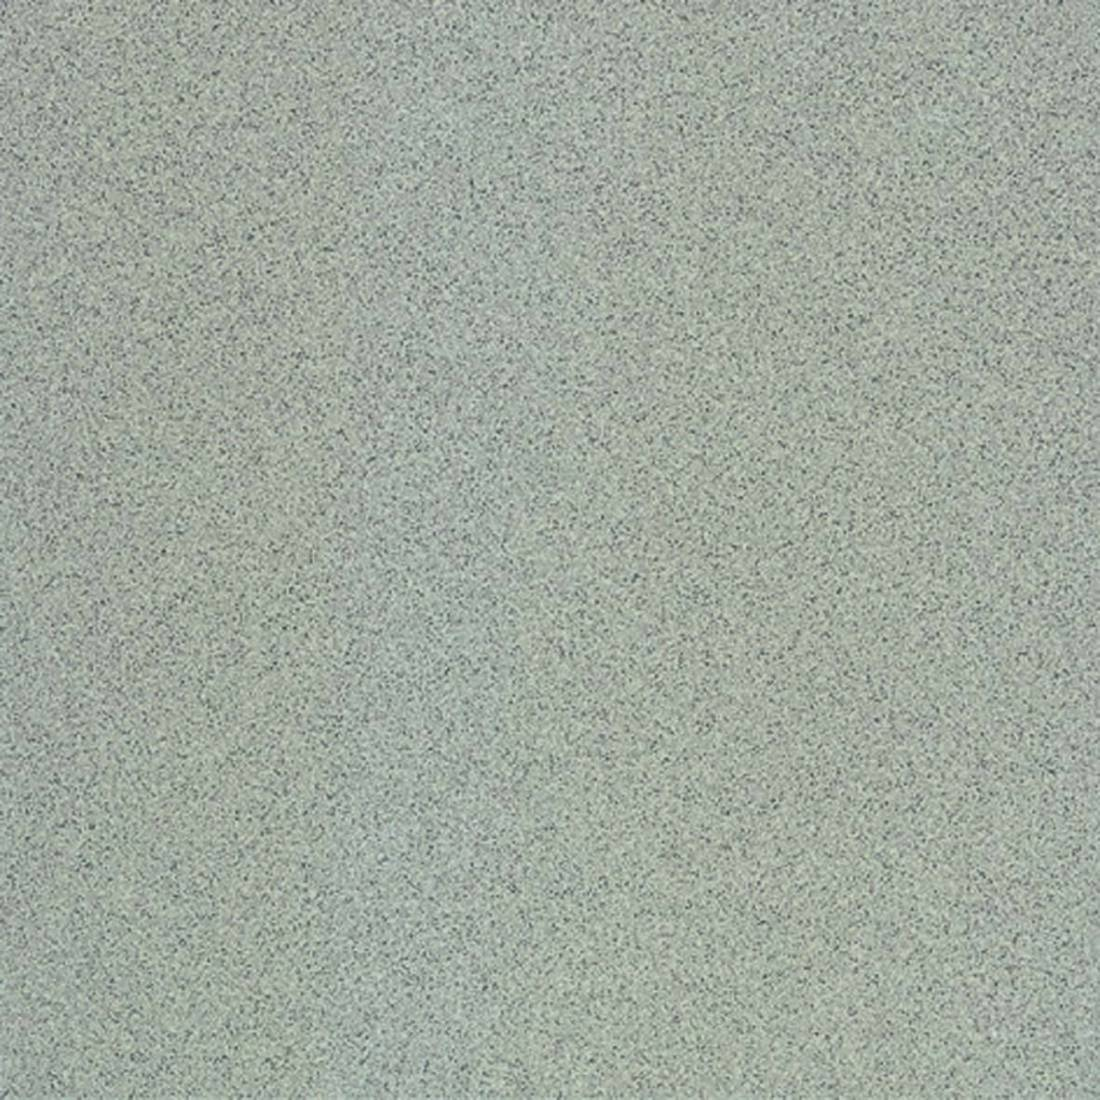 Granit 30x30 Nordic Light Grey Matt R9 1